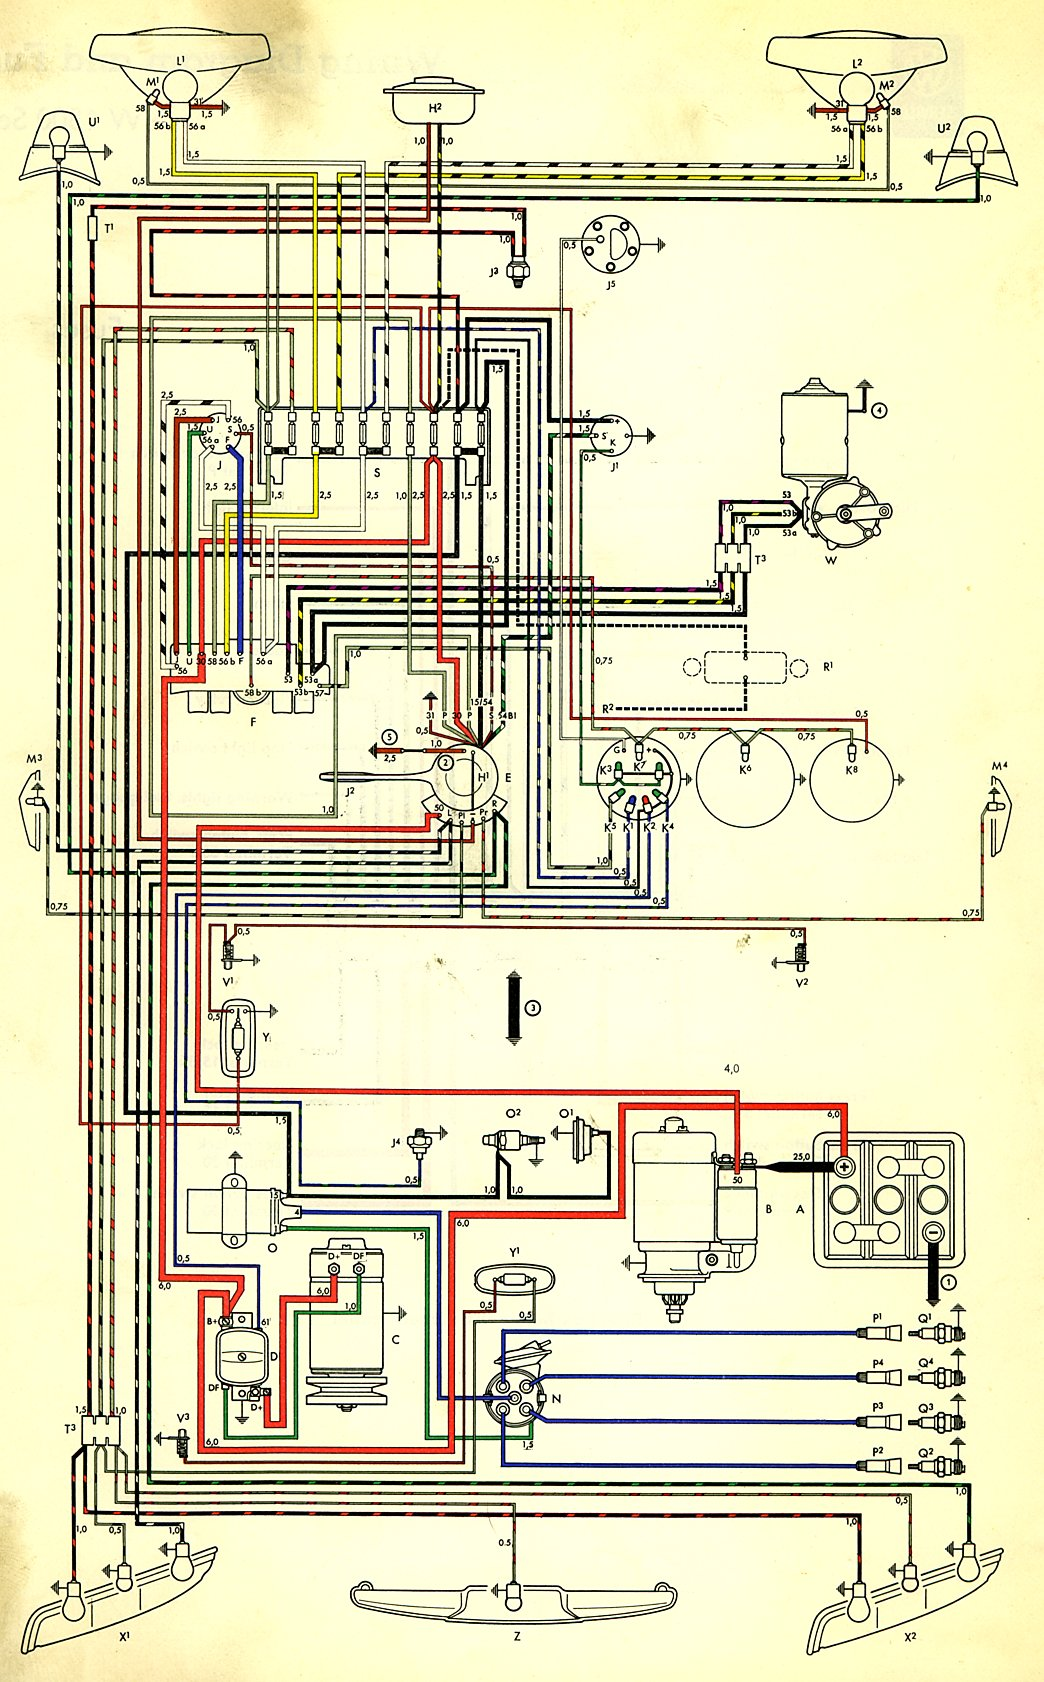 Nrp Ulv1 Wiring Diagram Free Download Ambulance Home Clot Piaa 510 2013 Flow At